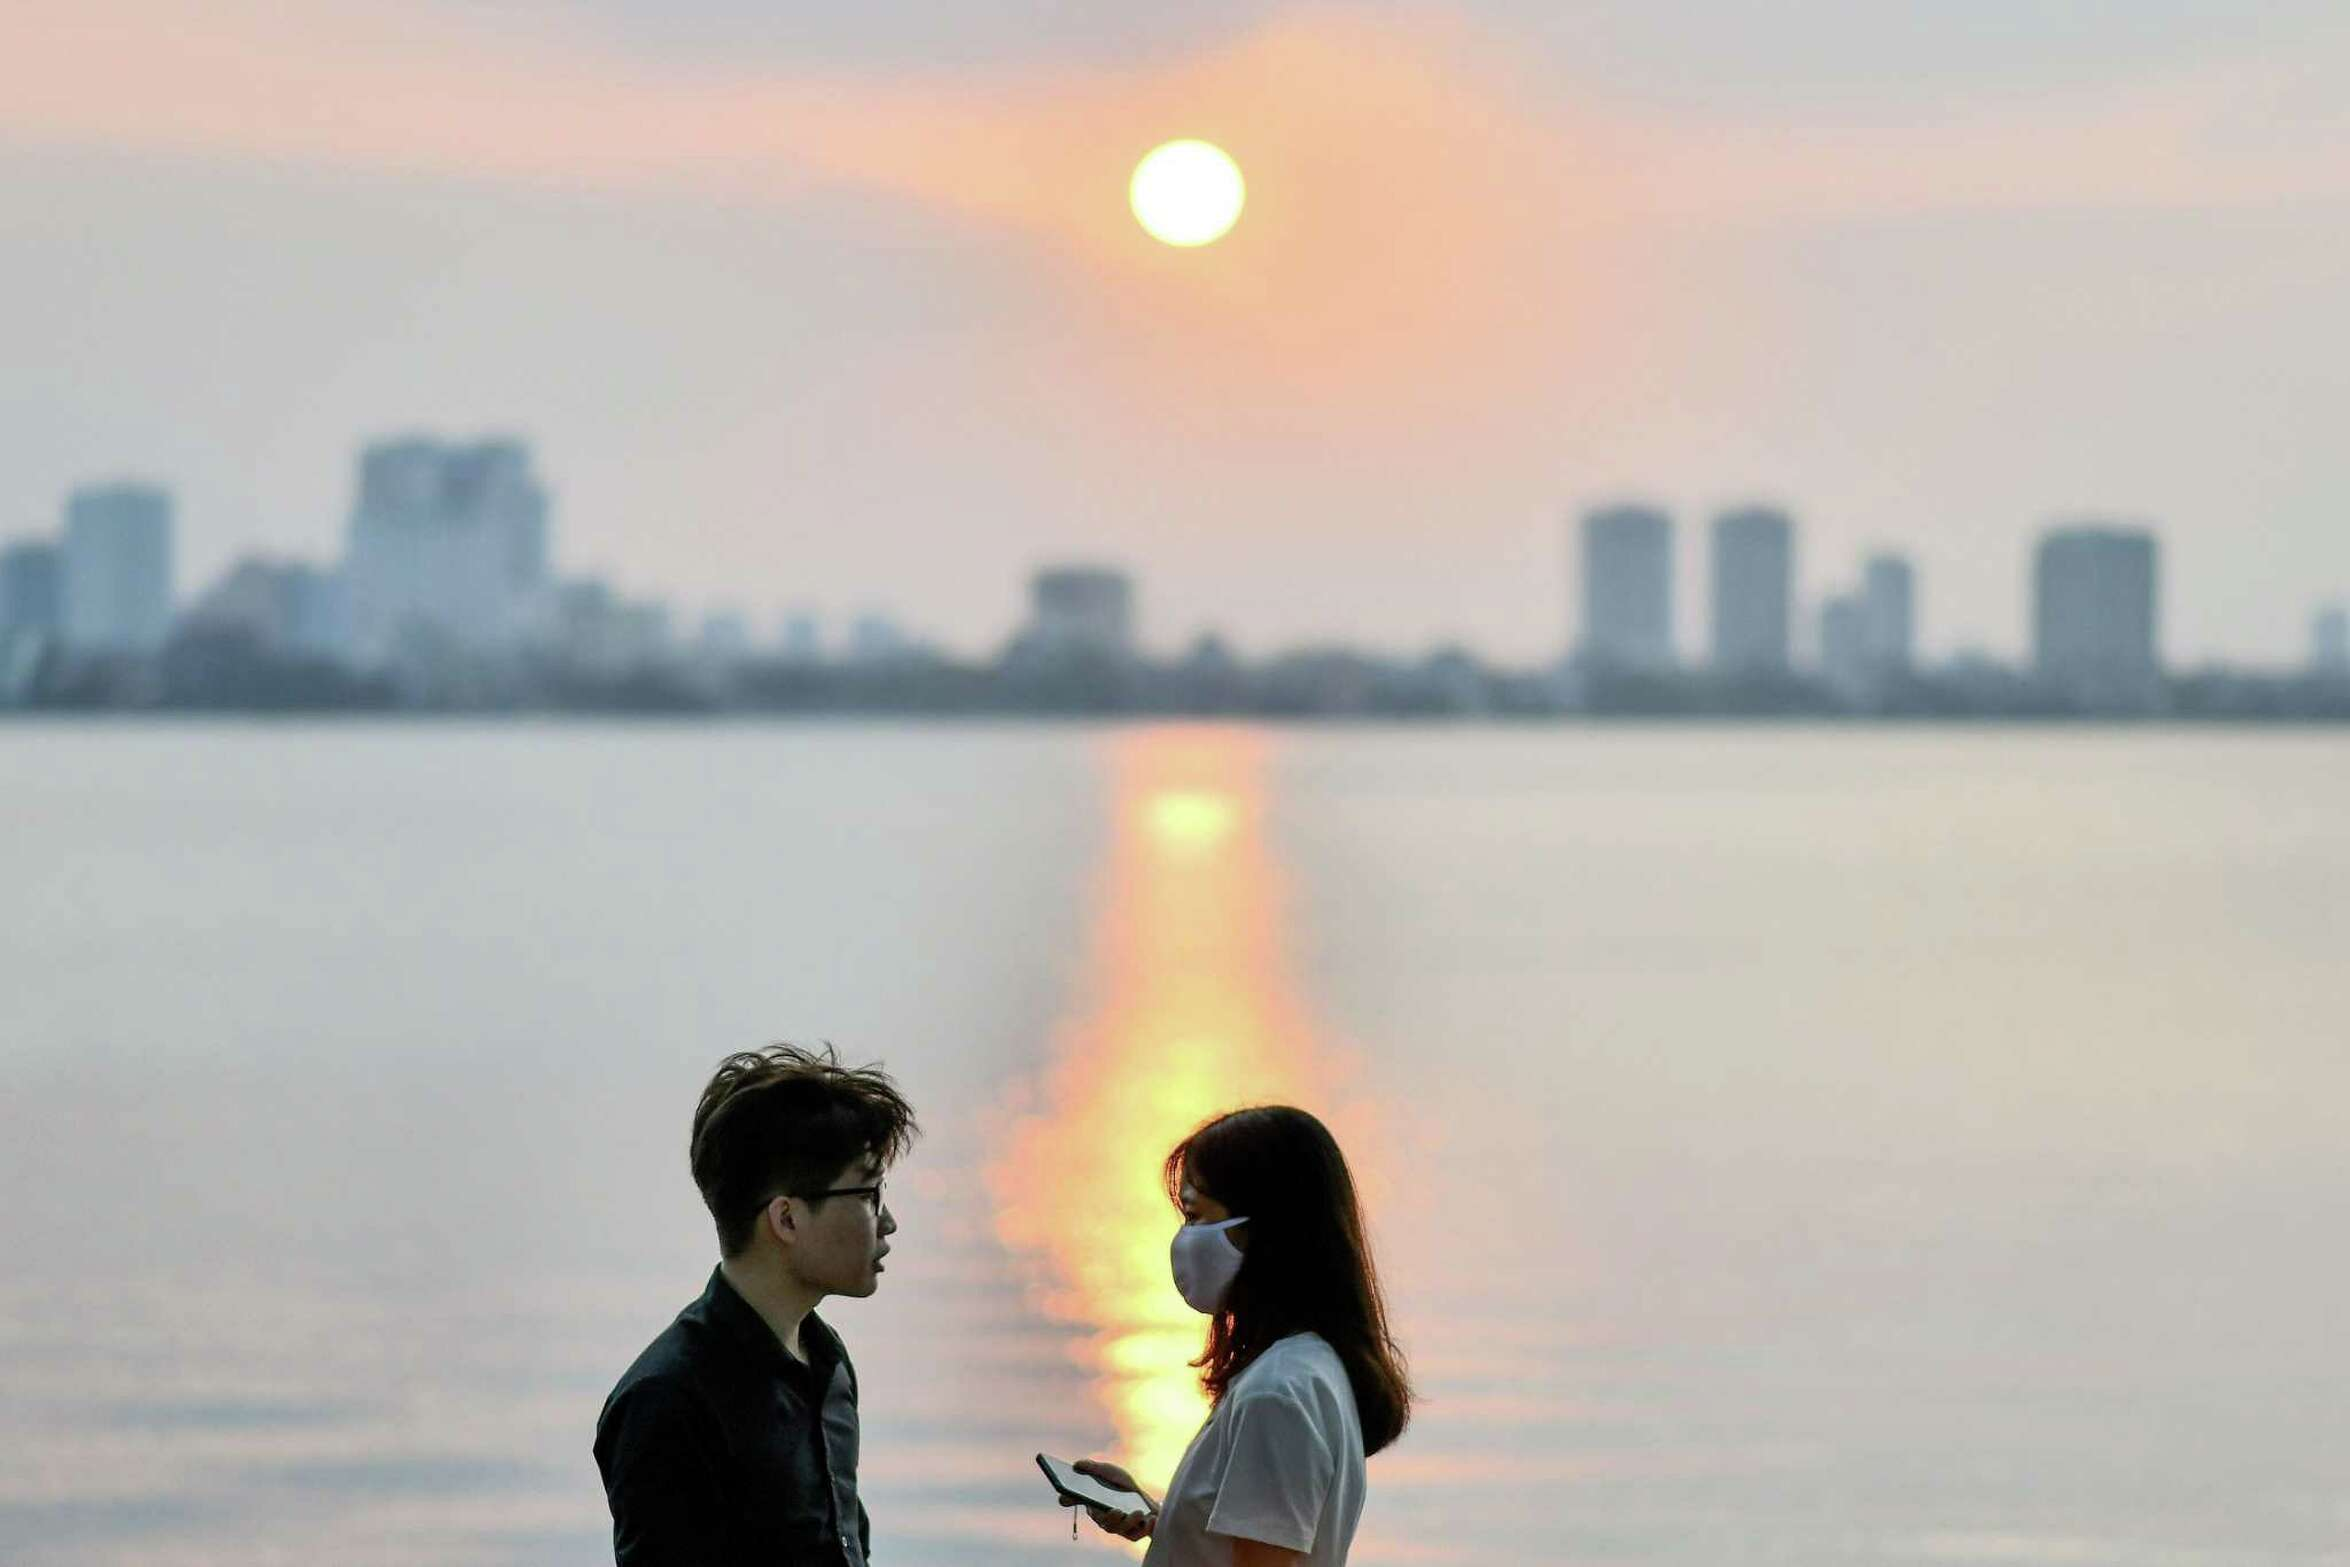 A girl (R), wearing a face mask as a preventive measure against the spread of the COVID-19 novel coronavirus, stands by the lakeside at sunset in Hanoi on May 2, 2020. (Photo by Manan VATSYAYANA / AFP) (Photo by MANAN VATSYAYANA/AFP via Getty Images)